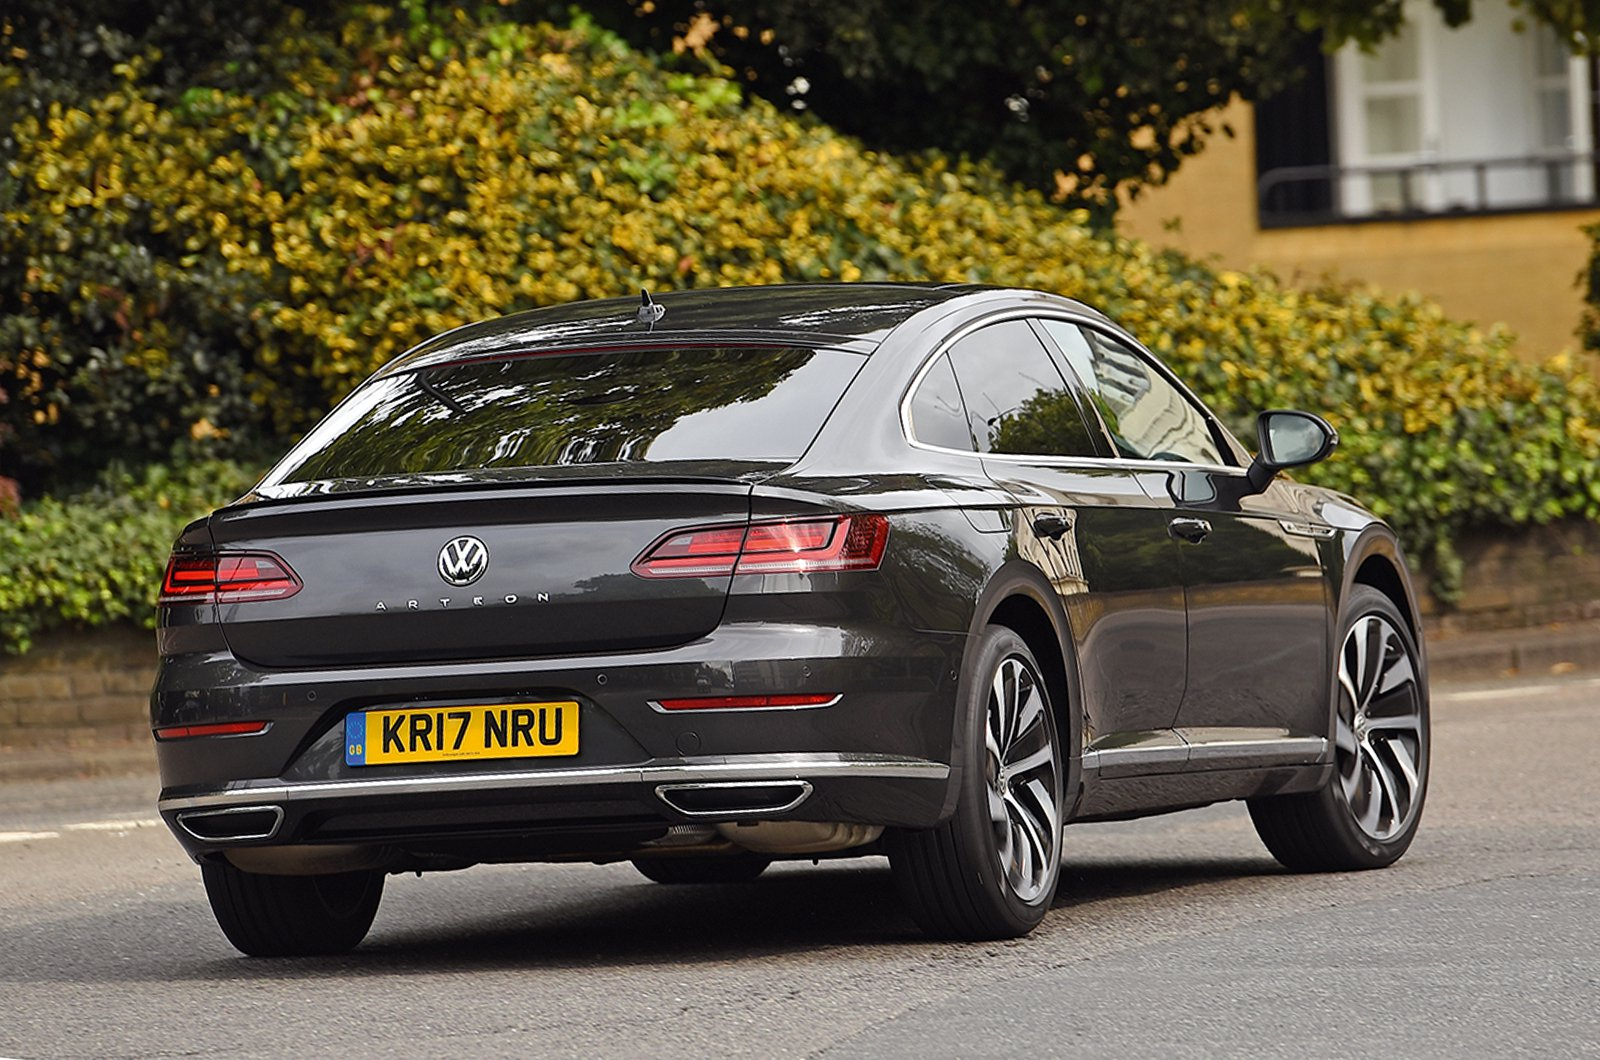 Used test: Jaguar XE vs Volkswagen Arteon